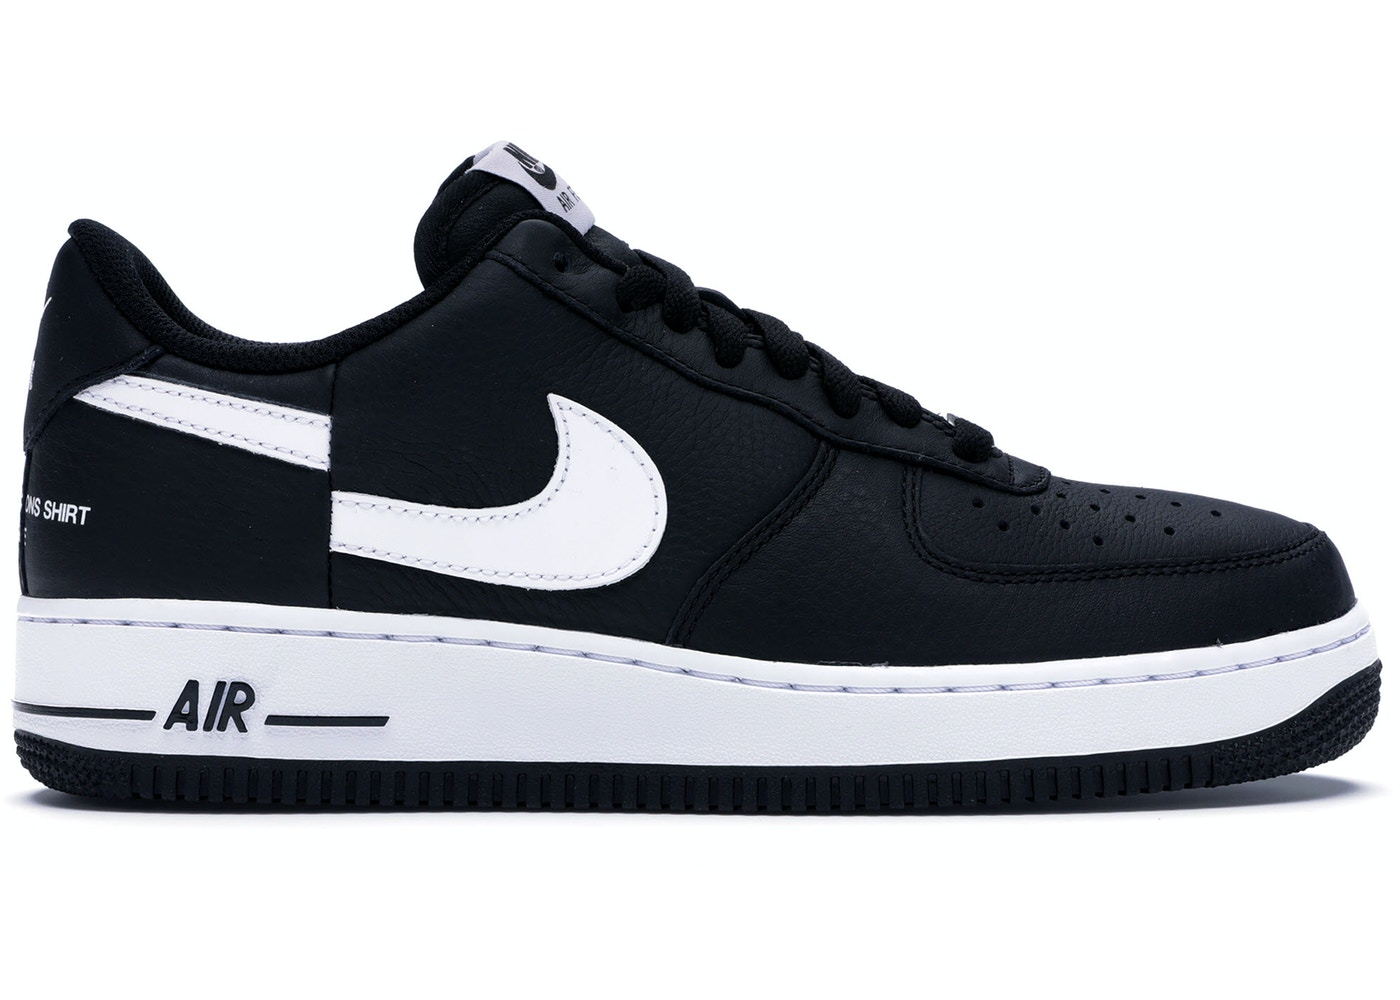 19bb9de1e688 Air Force 1 Low Supreme x Comme des Garcons (2018) - AR7623-001